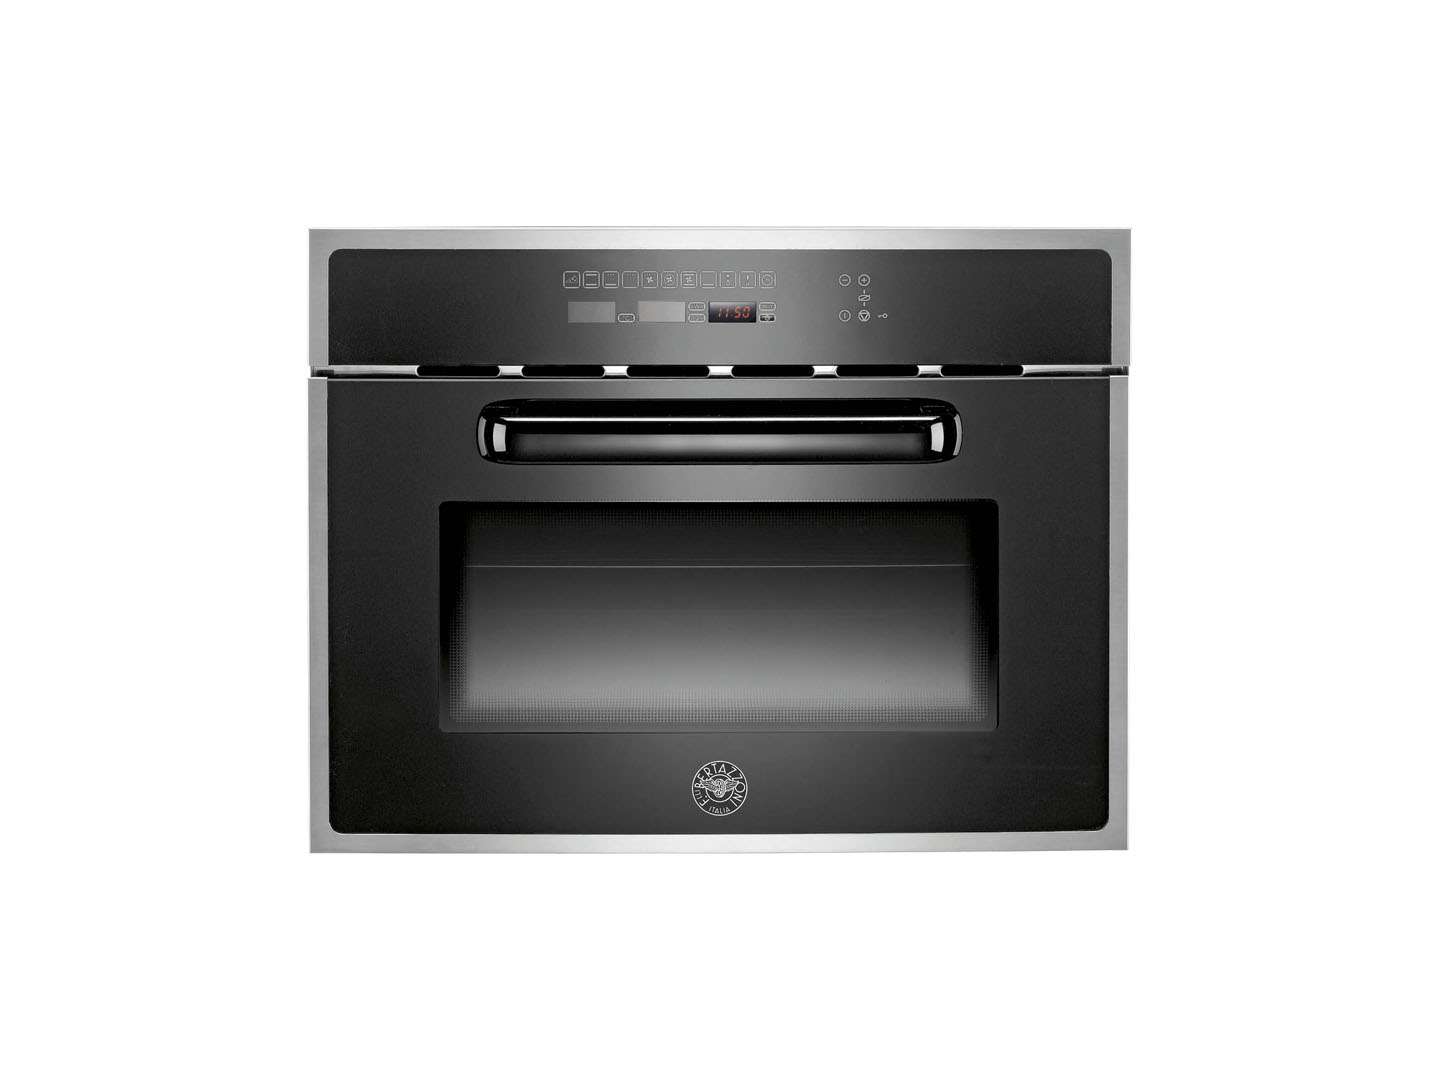 45 electric oven XT | Bertazzoni - Black